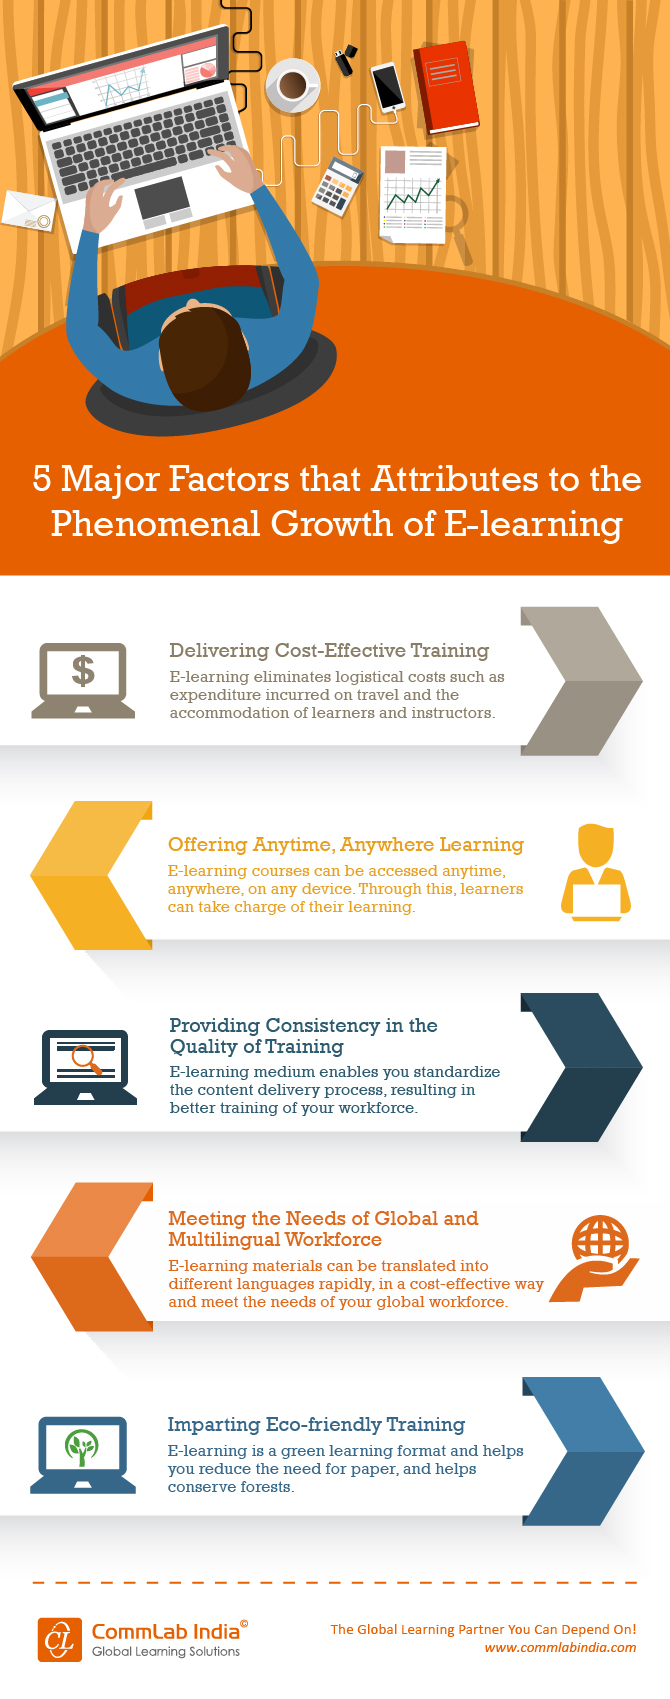 5 Major Factors that Contribute to the Phenomenal Growth of E-learning [Infographic]